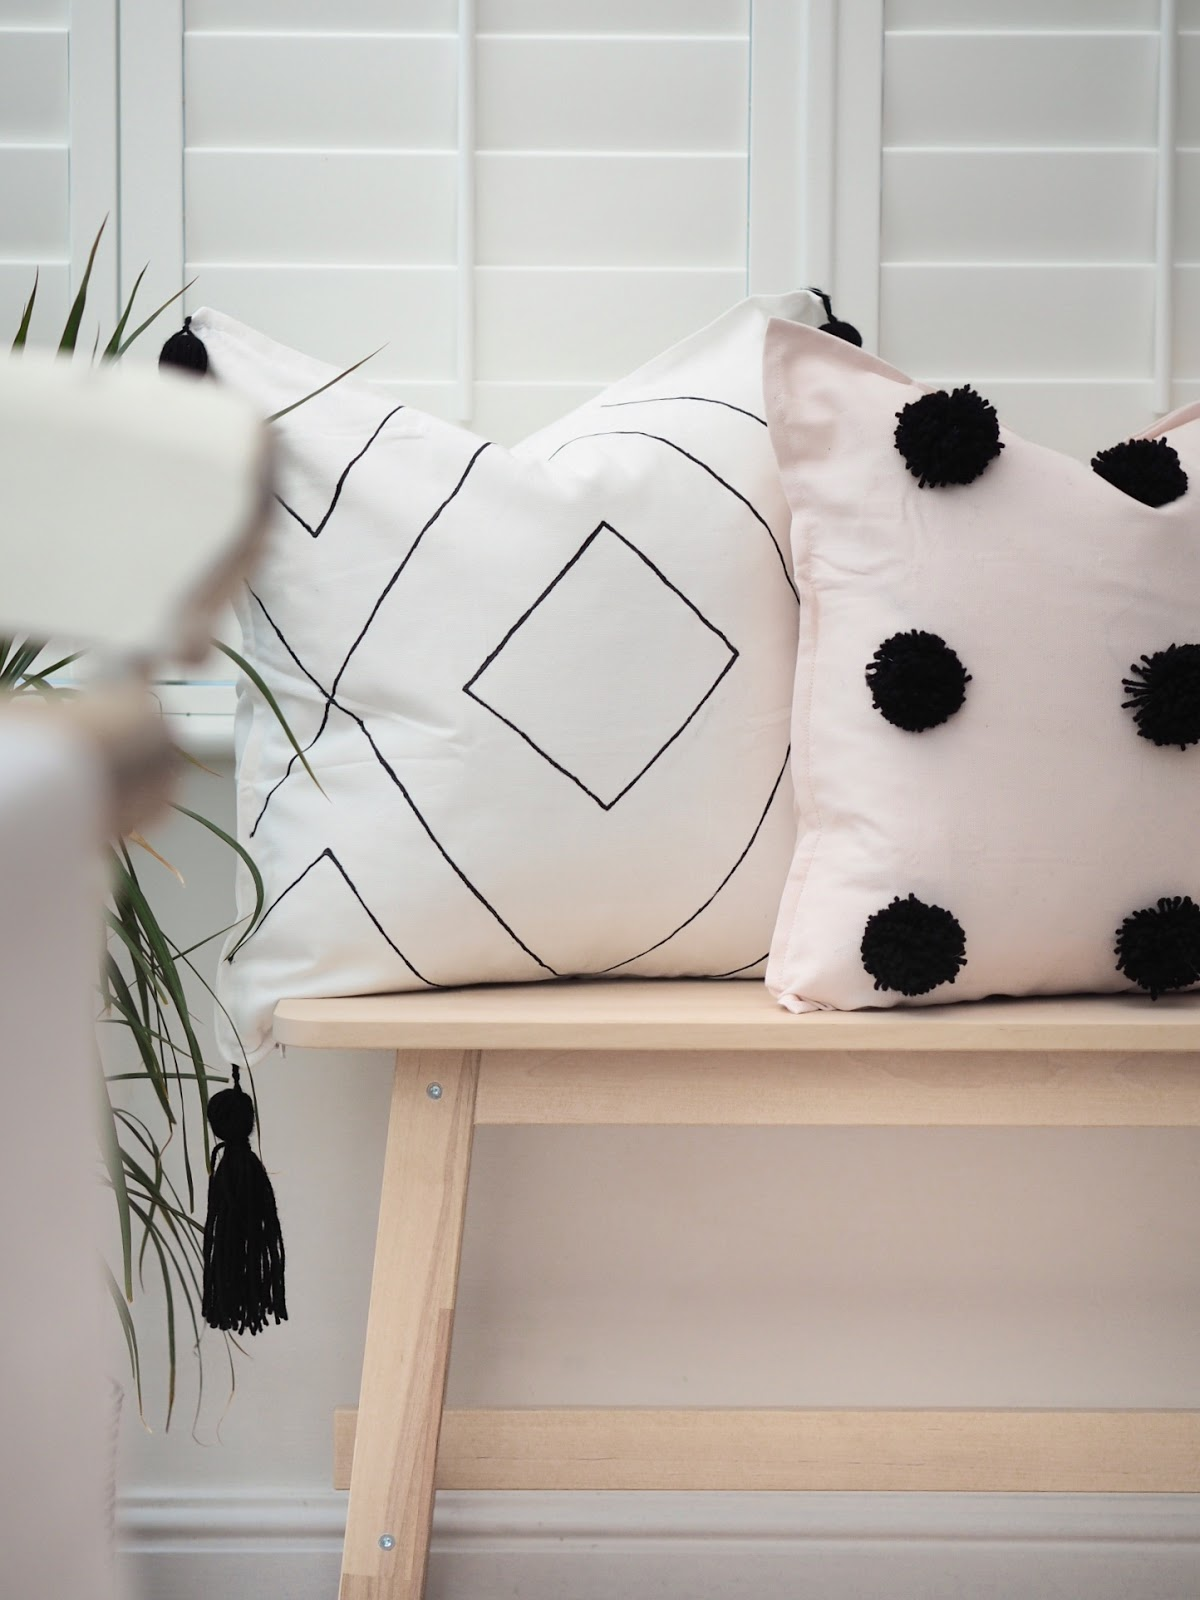 DIY tutorial boho cushion cover with woollen pom poms and tassels. Hand drawn and finished with fabric paint. DIY handmade home interiors to create luxury decor on a budget